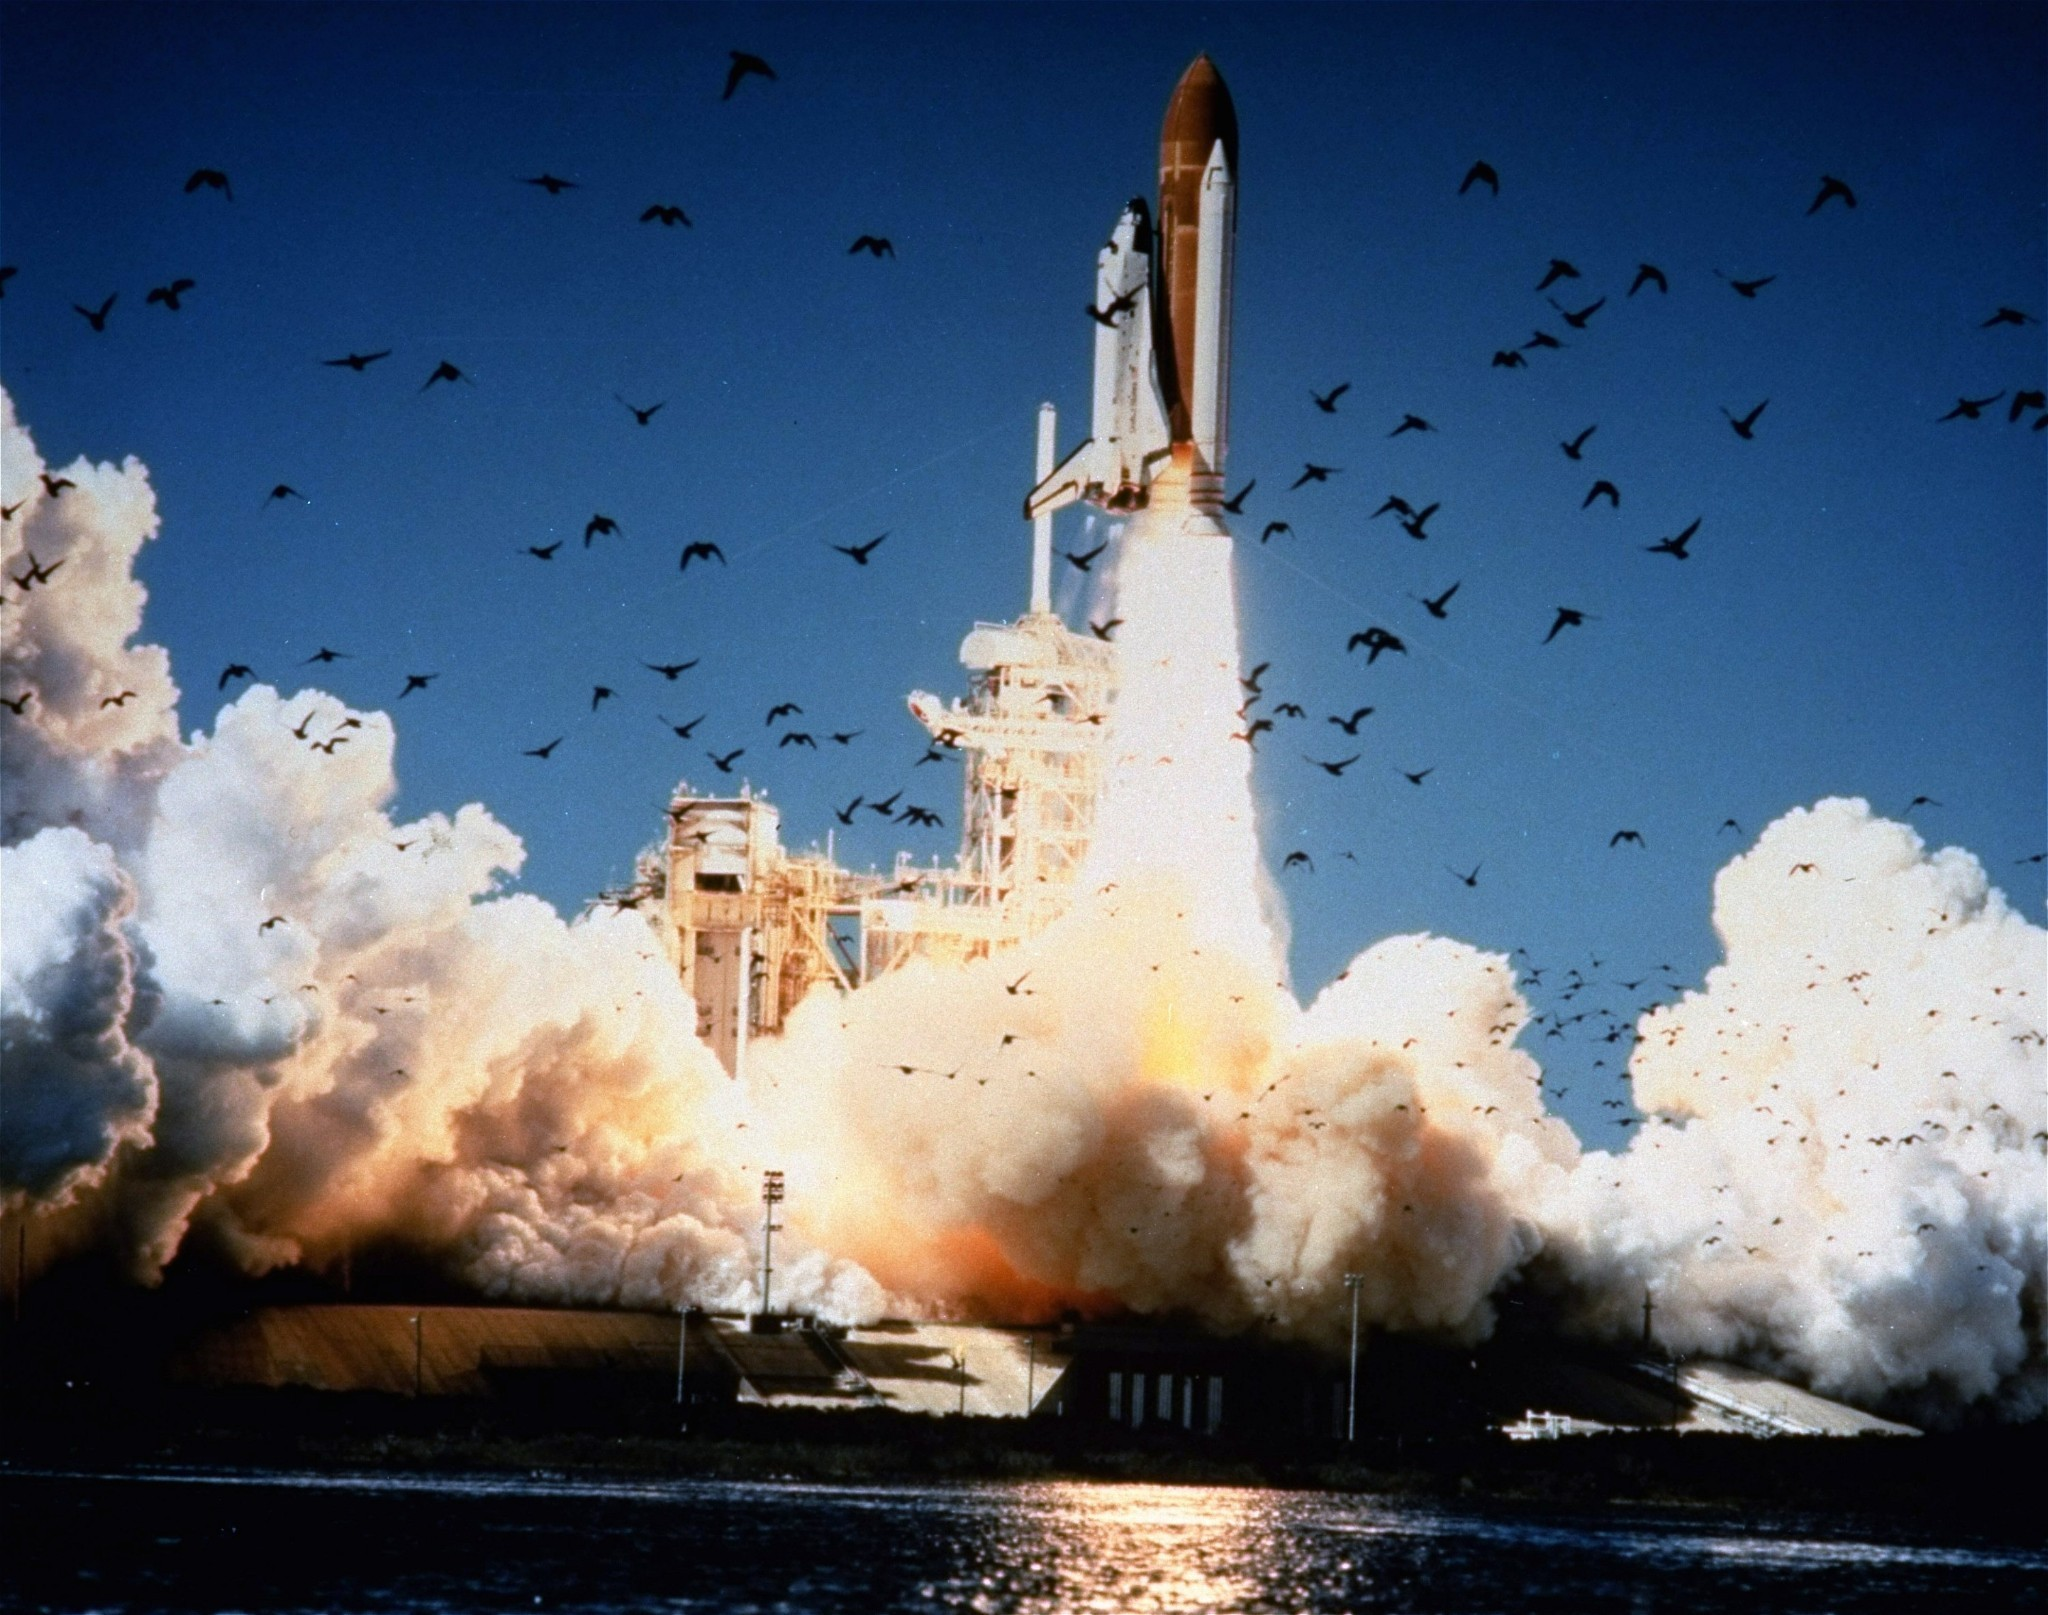 Your Letters Helped Challenger Shuttle Engineer Shed 30 Years Of Guilt